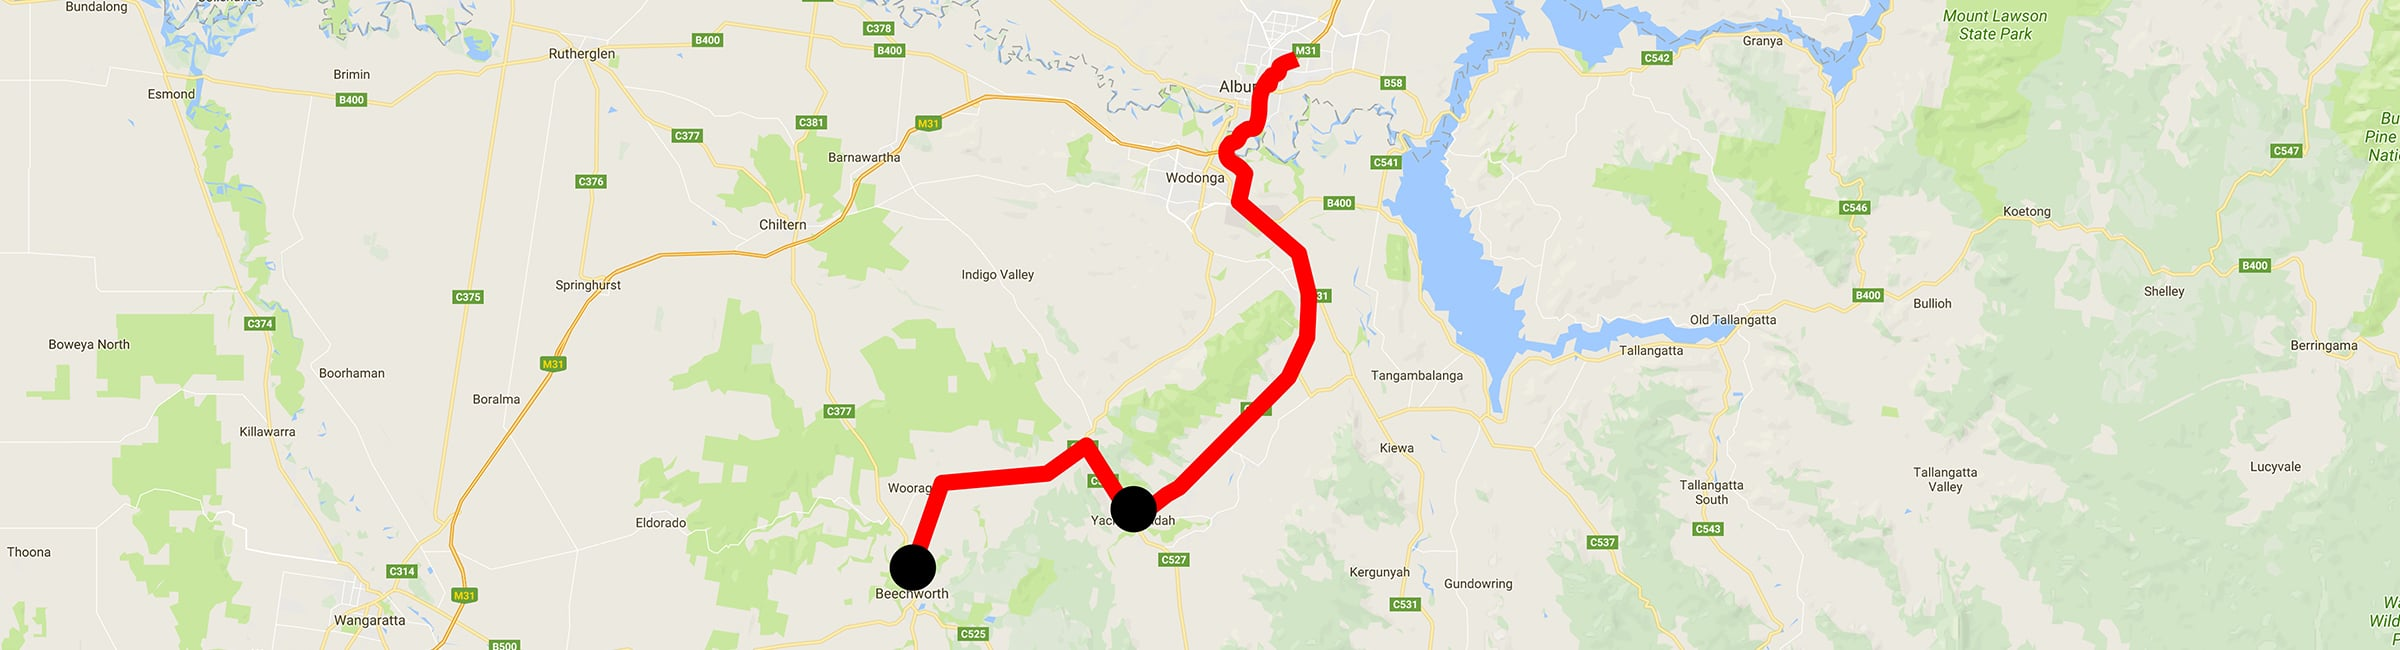 Day Trip - Yackandandah - Beechworth - Albury Taxis